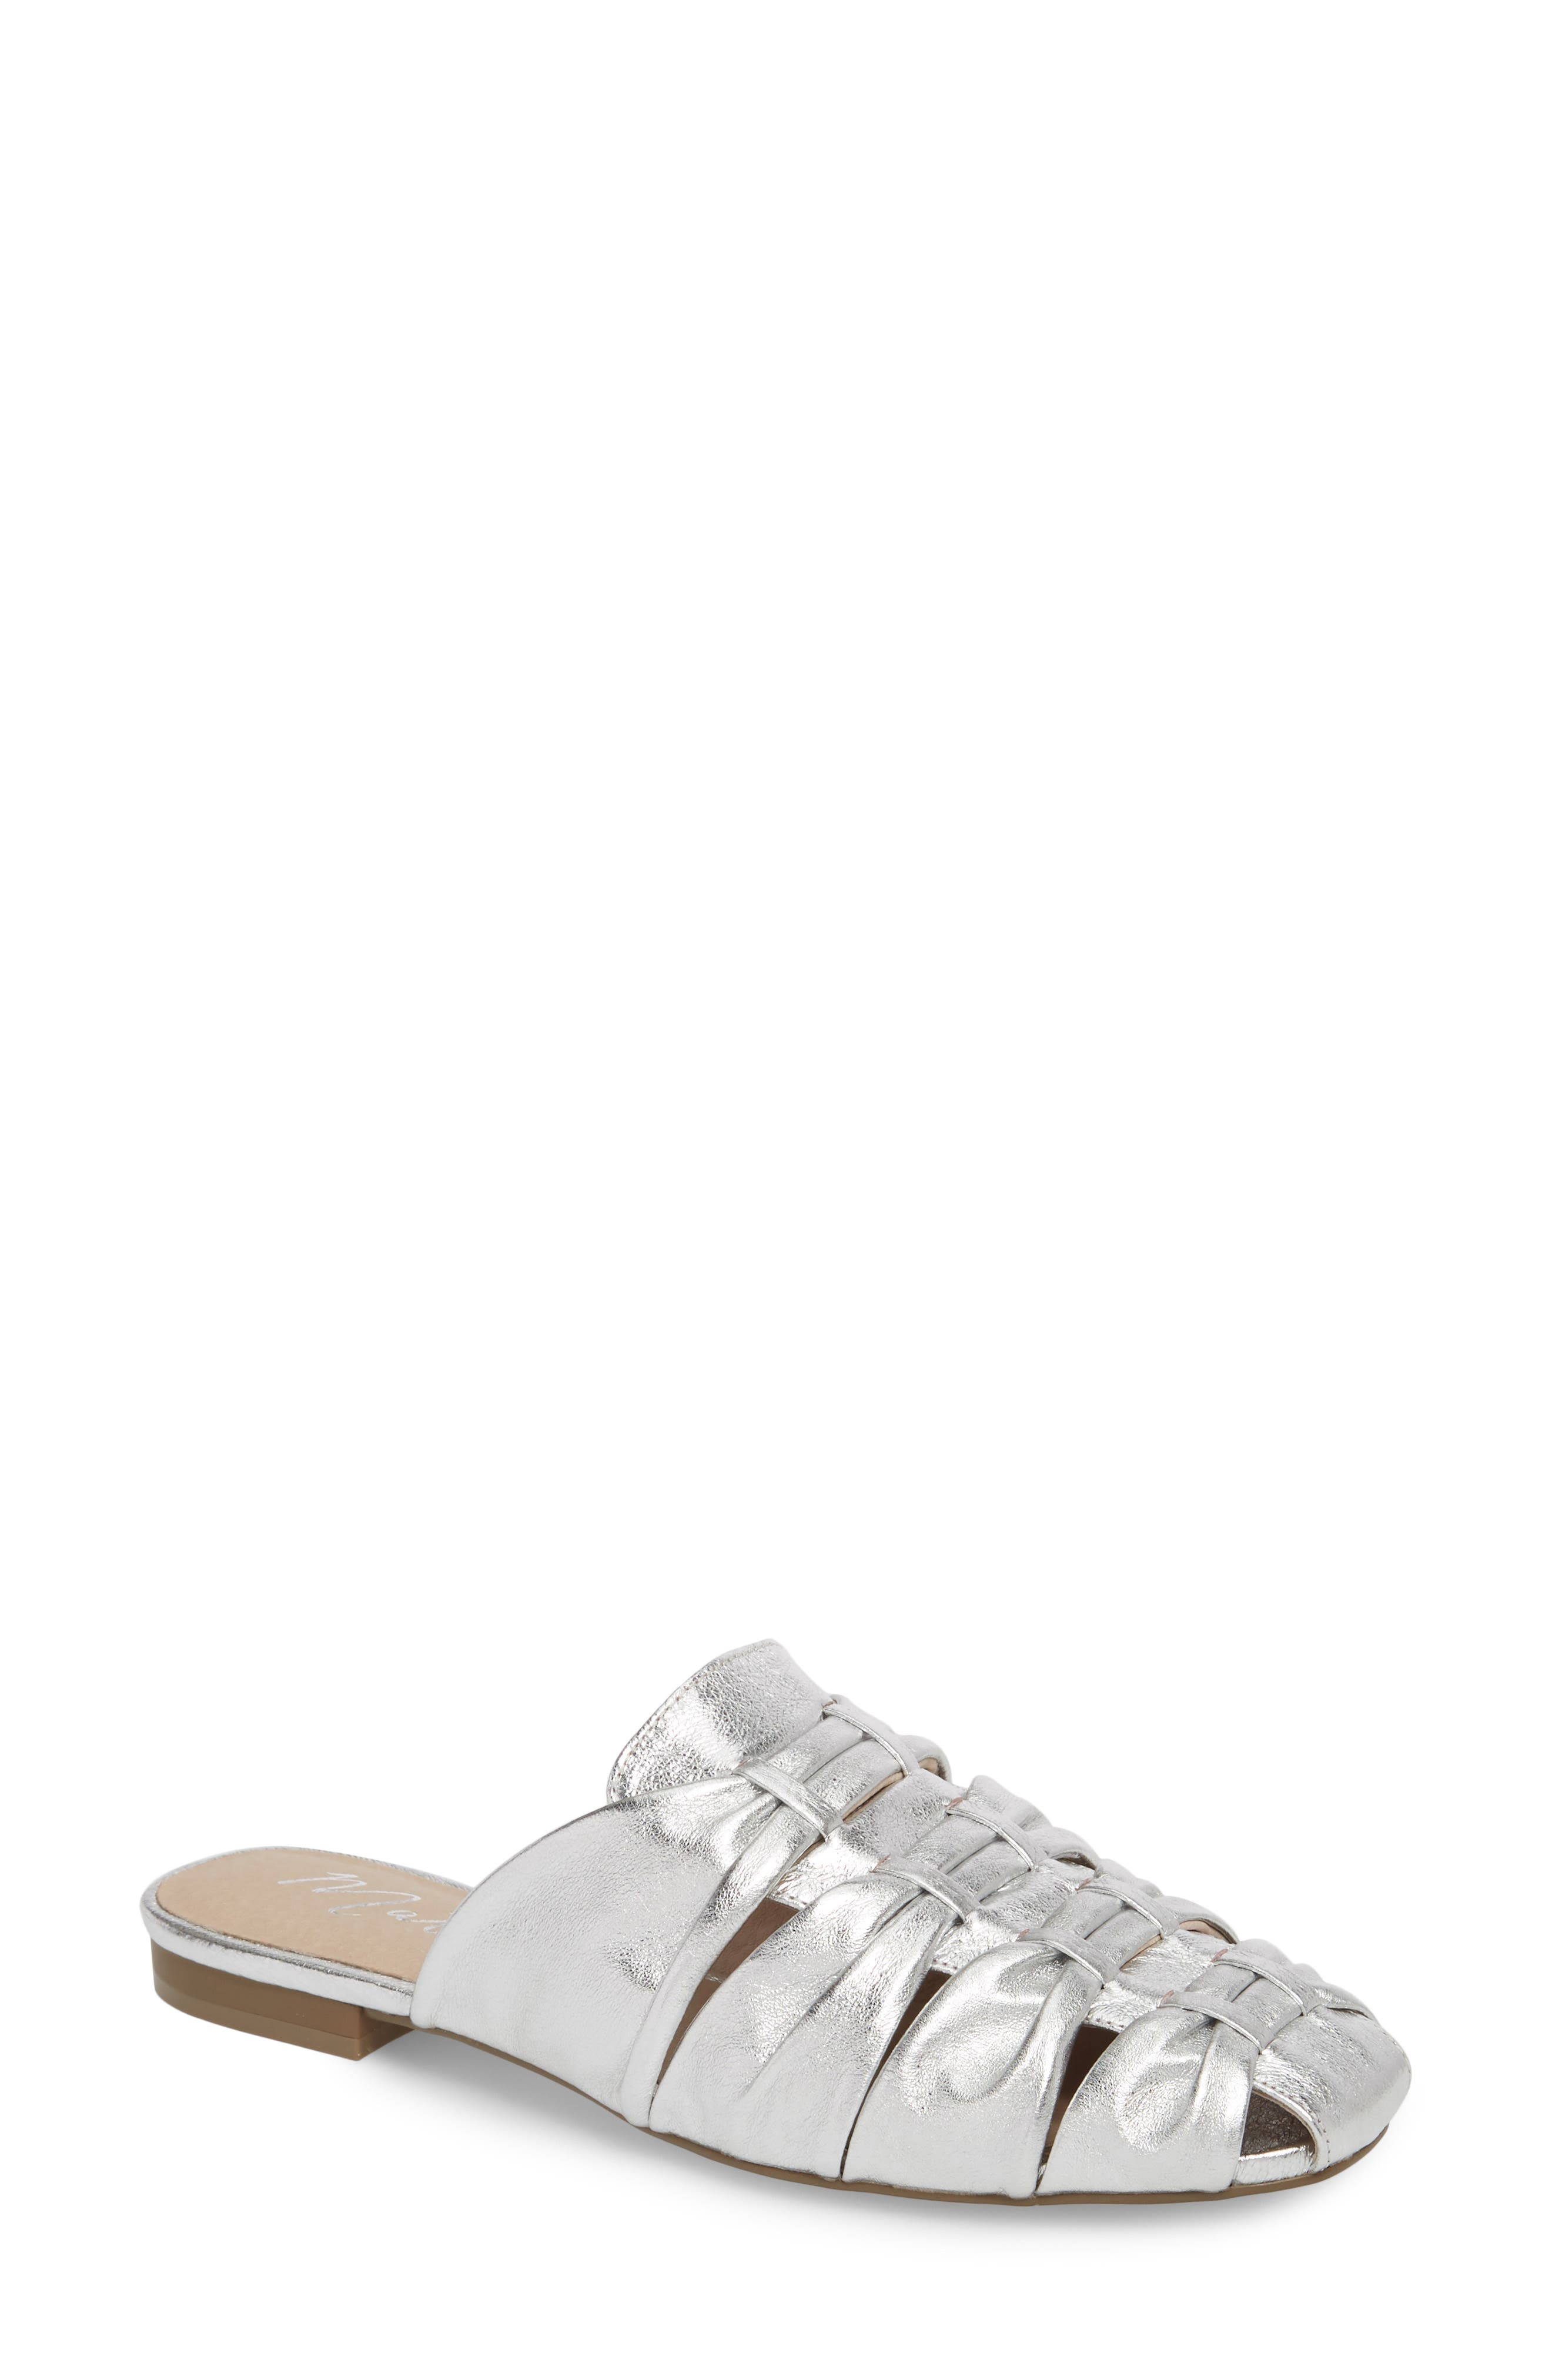 Evangeline Mule,                         Main,                         color, SILVER LEATHER